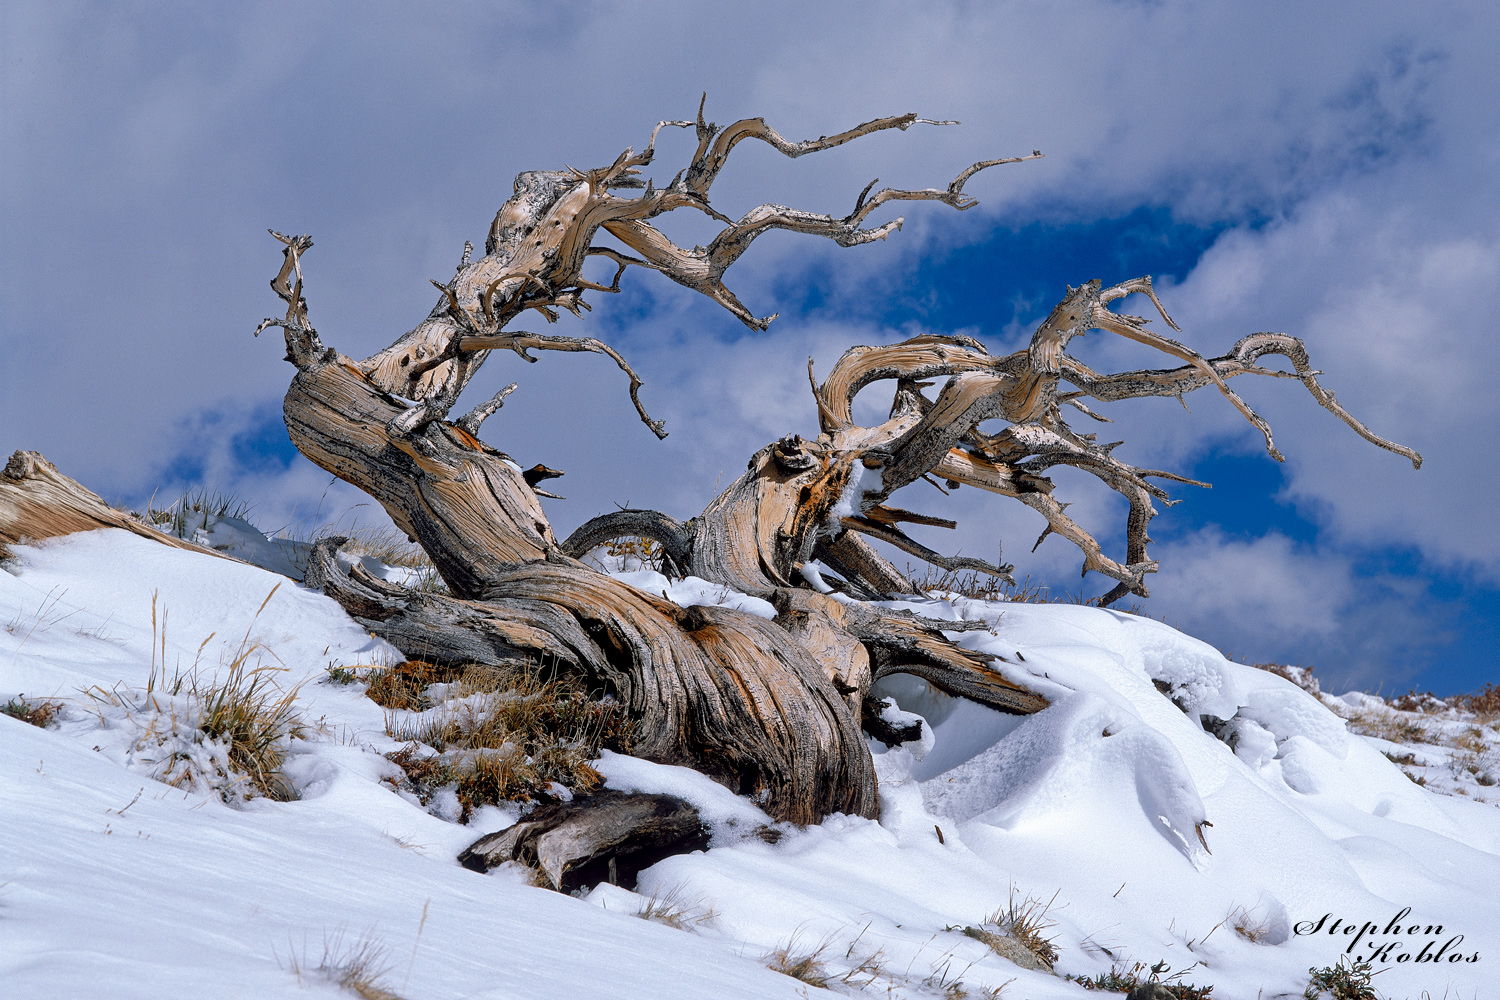 Antient Bristlecone Pine, photo